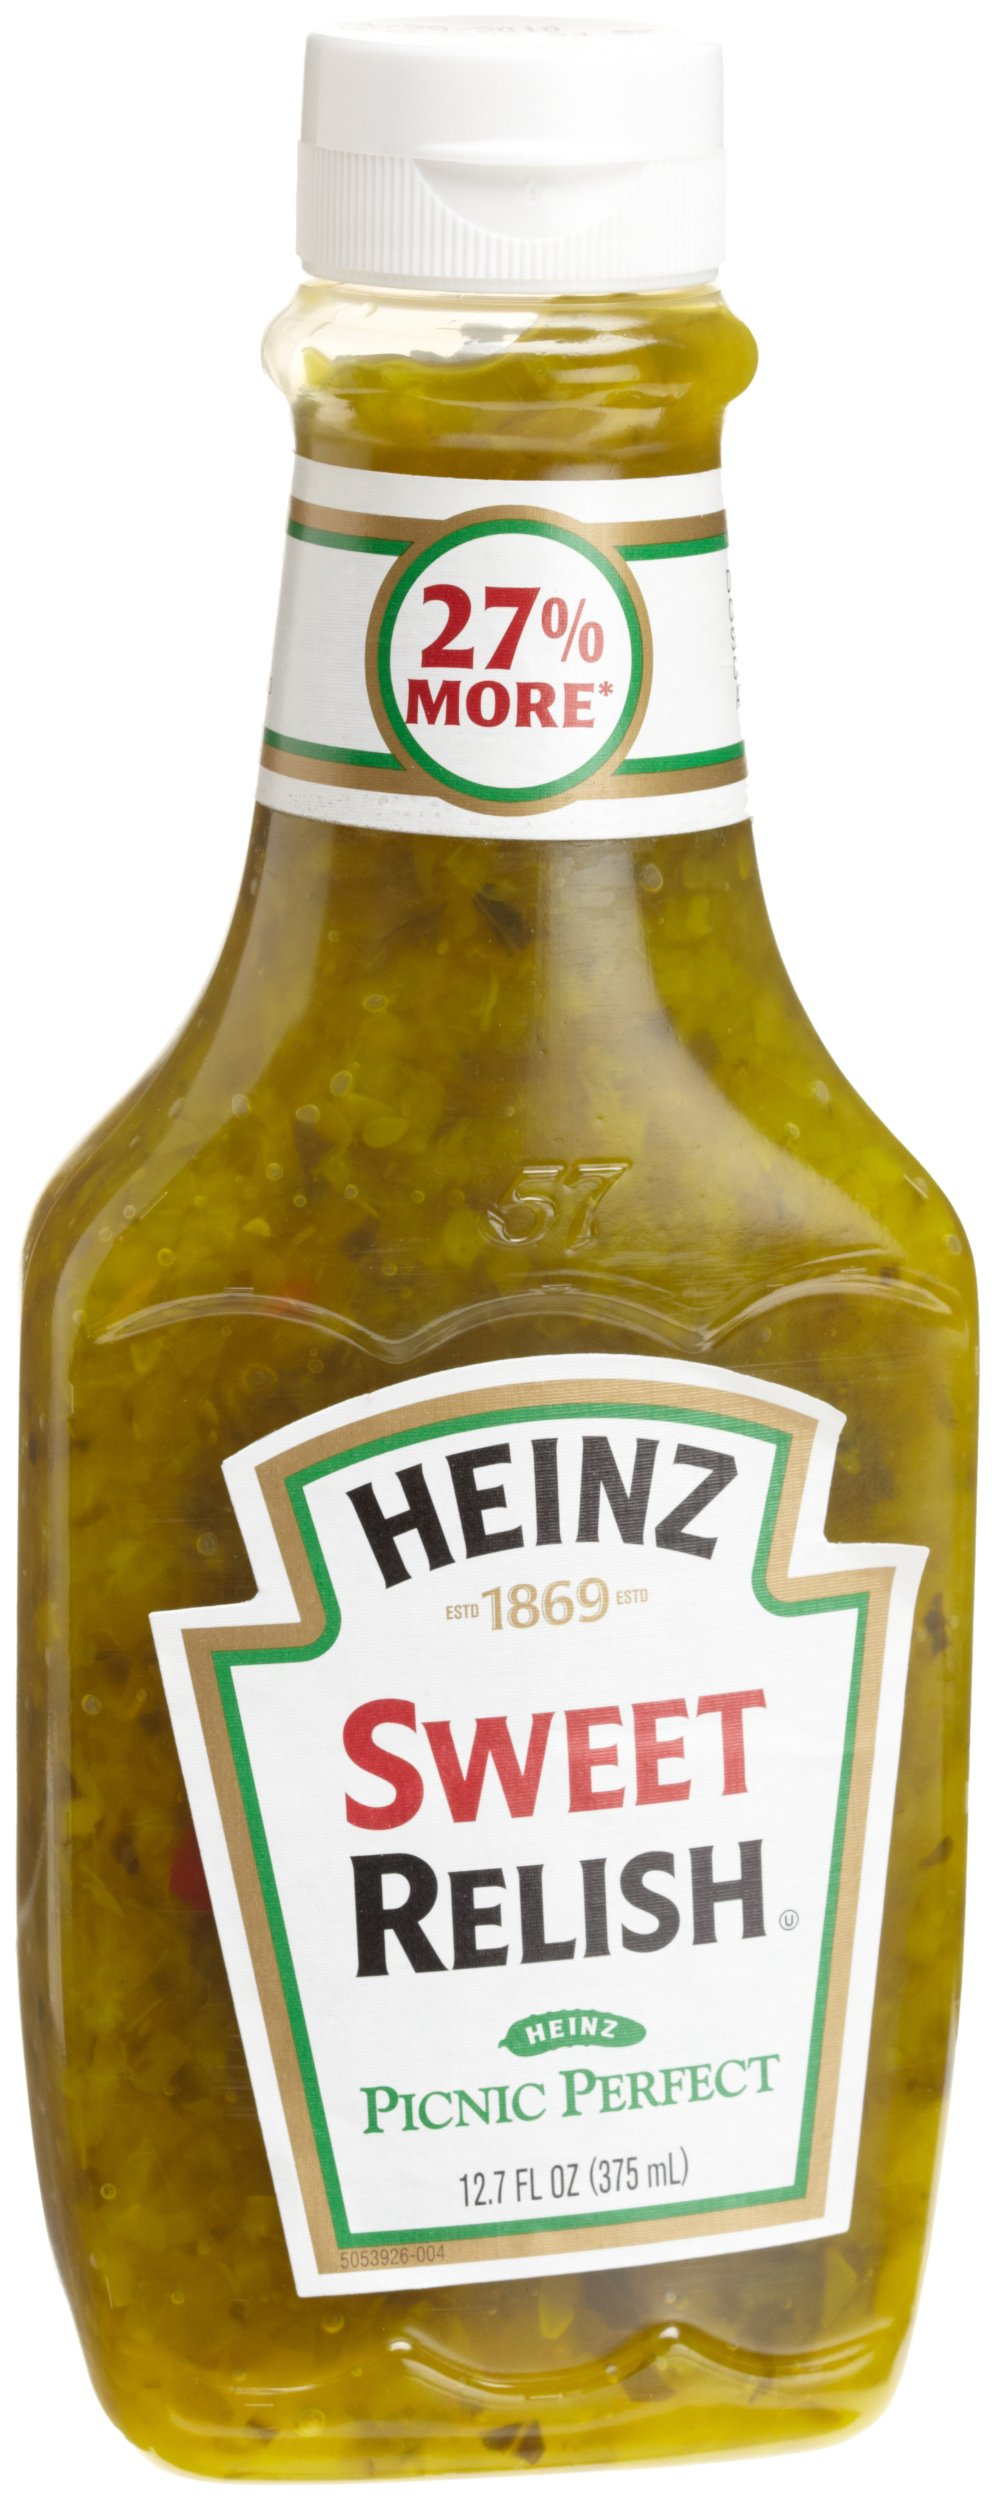 Heinz Sweet Relish, 12.7 Ounce (Pack of 12) by Heinz